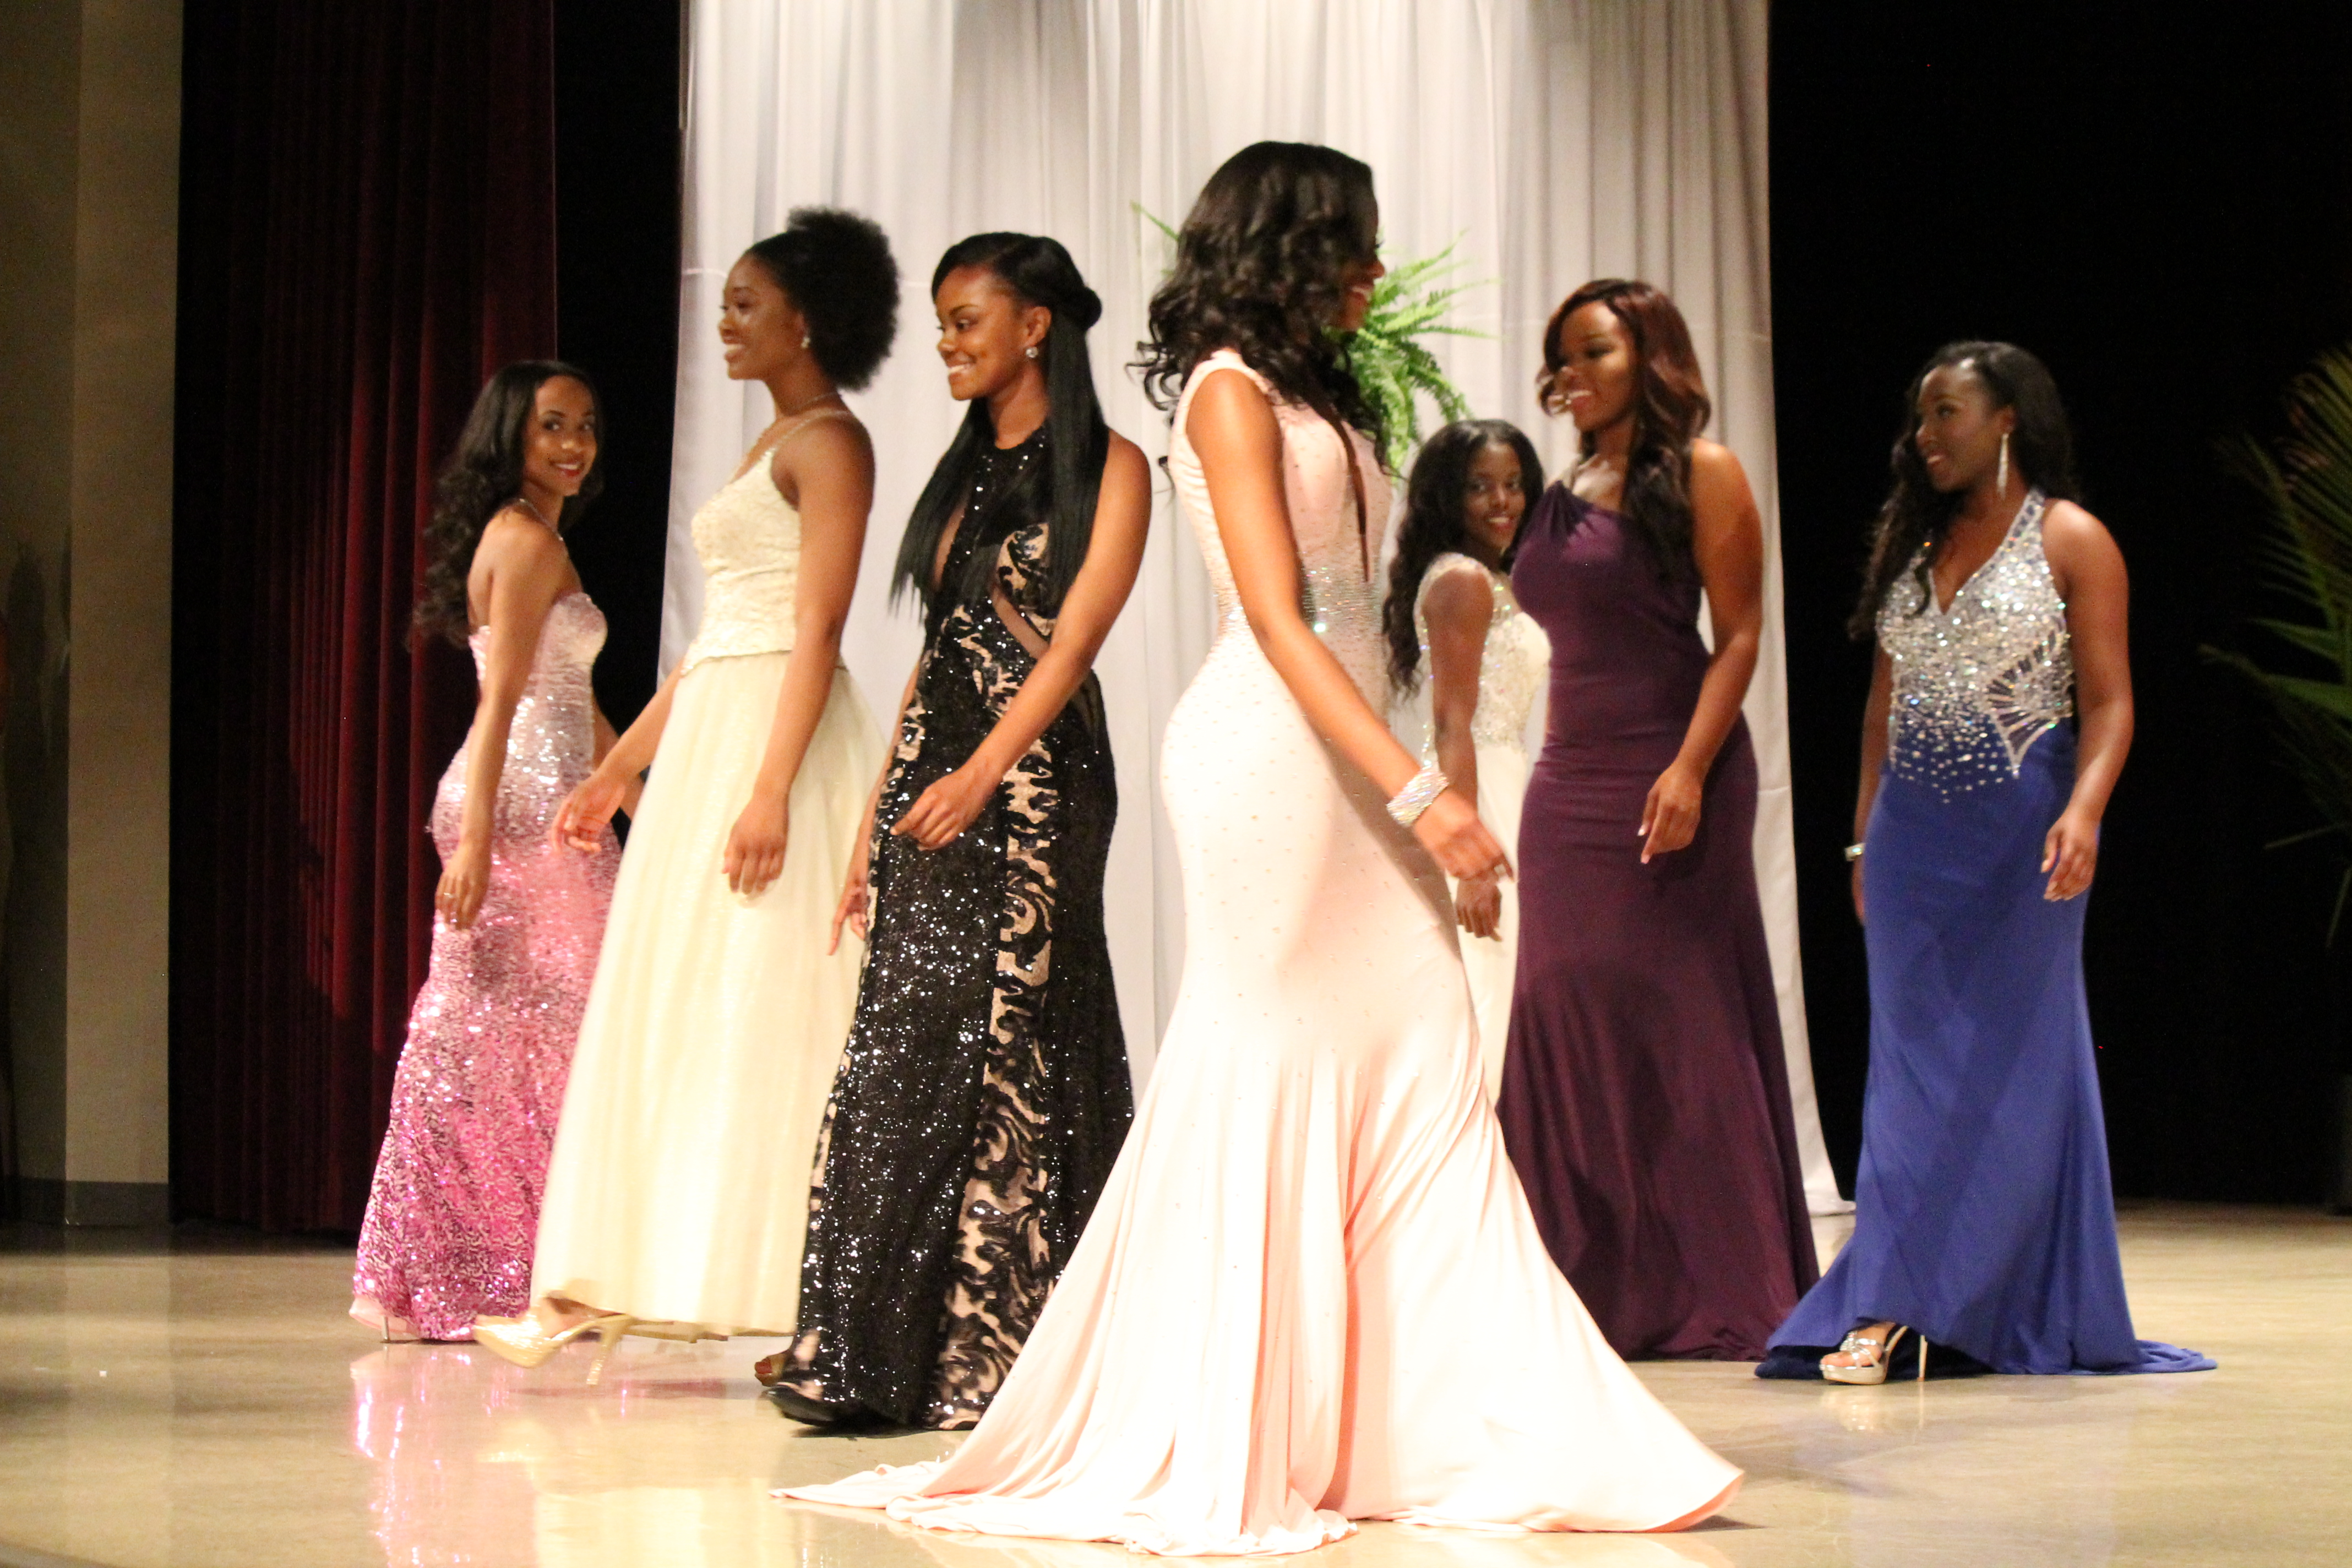 Participants of the Miss Claflin University Pagent